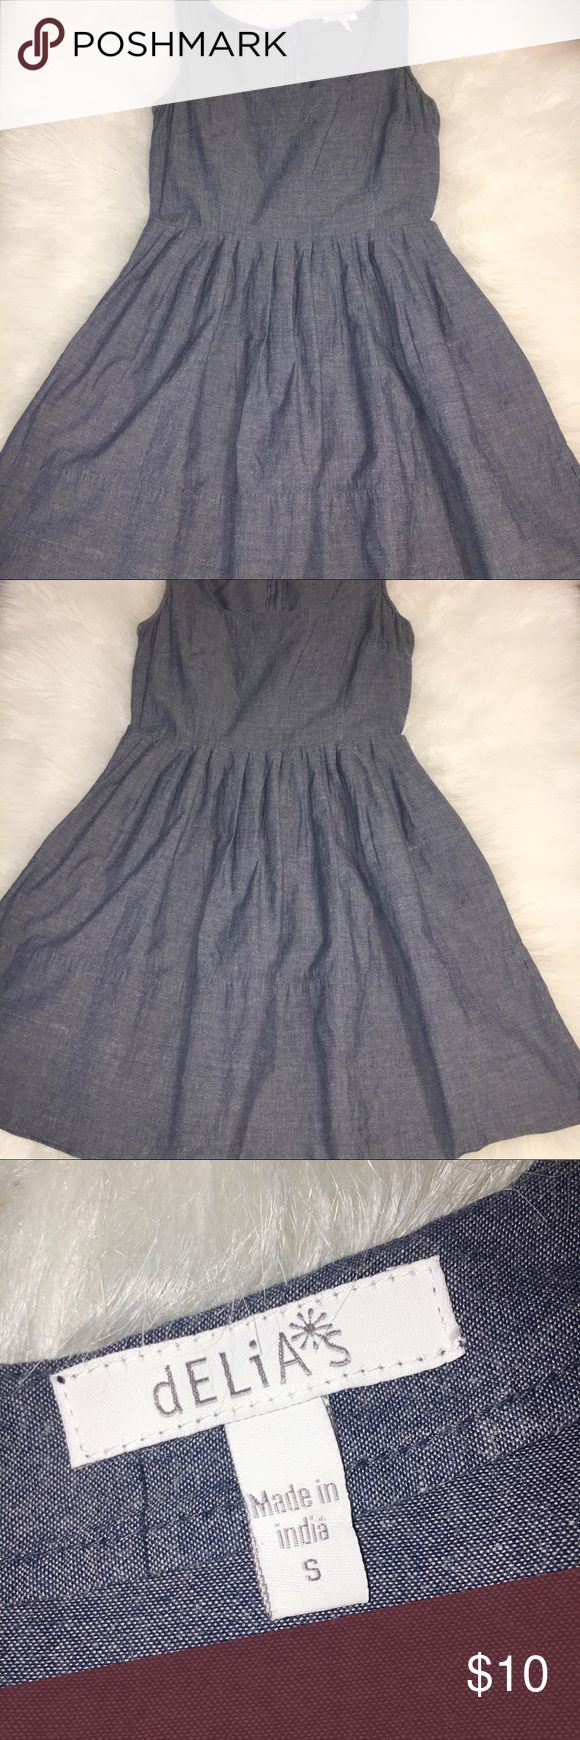 DELIA'S SMALL DENIM STYLE COCKTAIL DRESS DELIA'S SMALL DENIM STYLE COCKTAIL DRESS. PERFECT FOR FALL LAYERING. GREAT CONDITION. SLEEVELESS. ZIPS UP BACK. HIGH WAISTED. NOT ELASTIC. Delia's Dresses